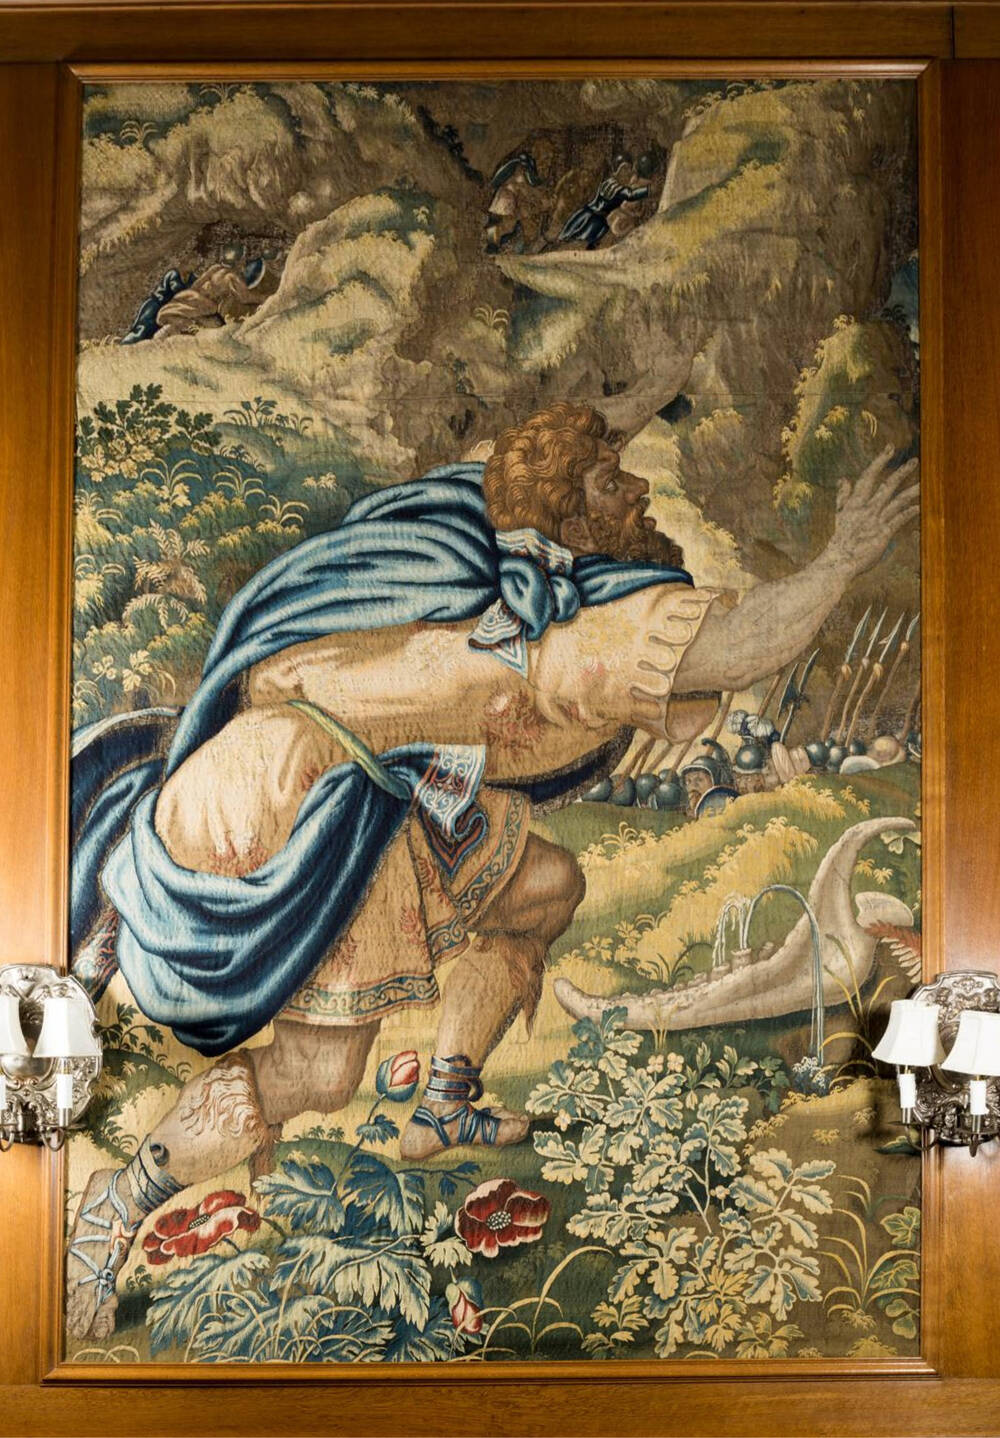 A tapestry depicting Samson. He wears a blue wrap and is in a pastoral setting. He is leaning forward.